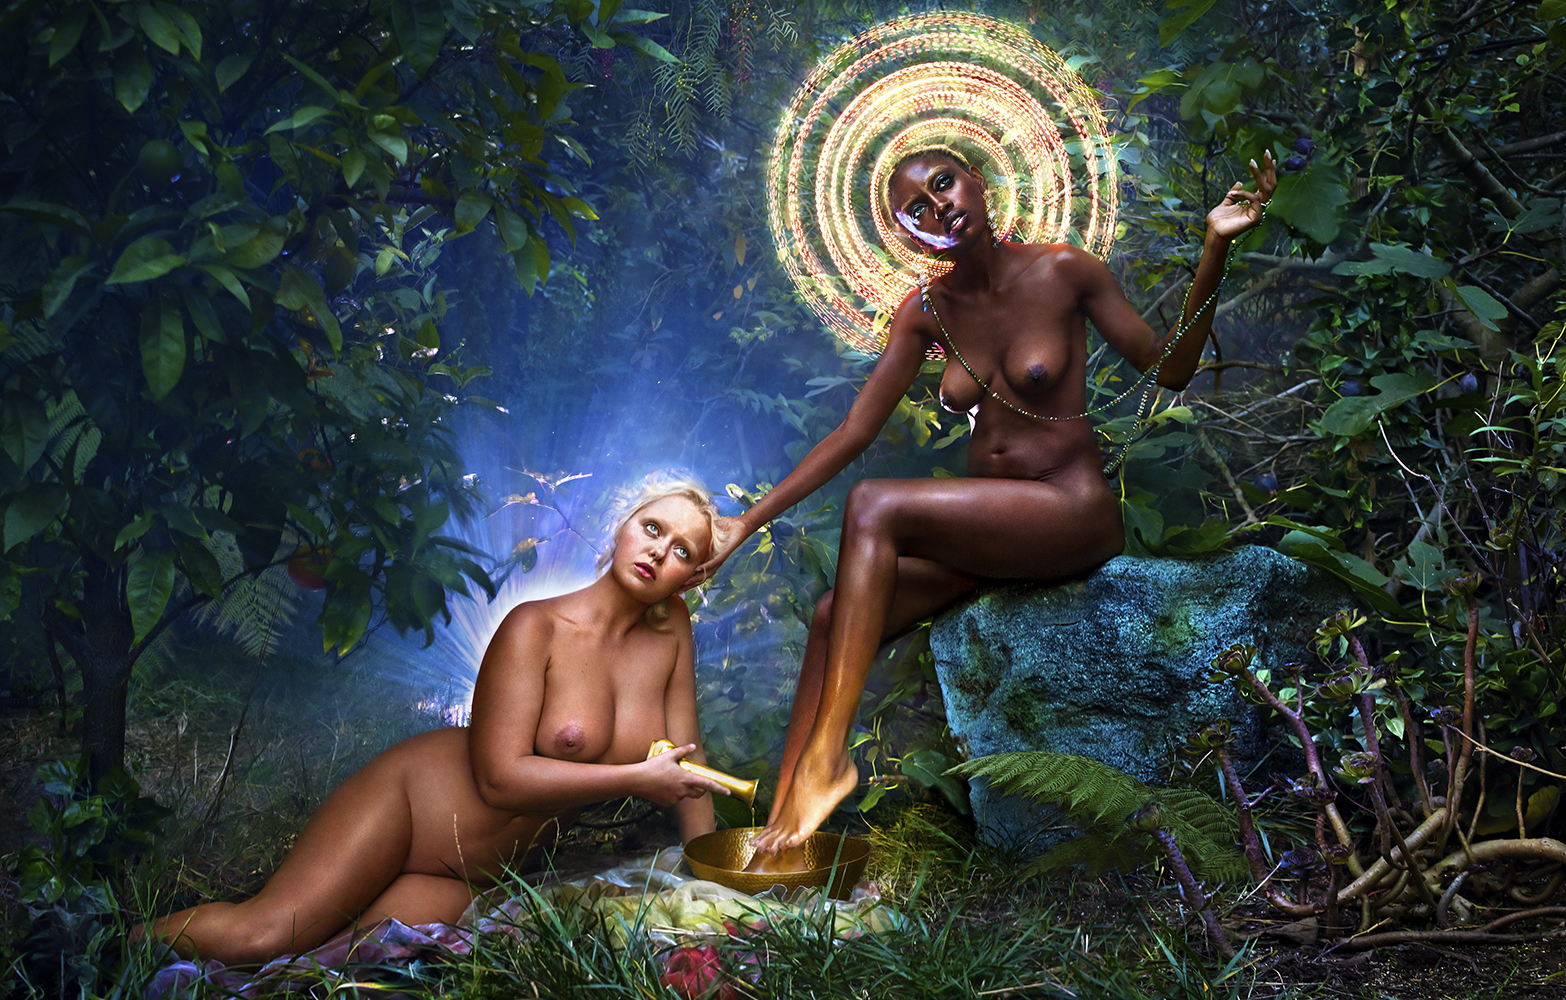 We Forgave Deeply Then Love Flooded Our Hearts, 2017 © David LaChapelle